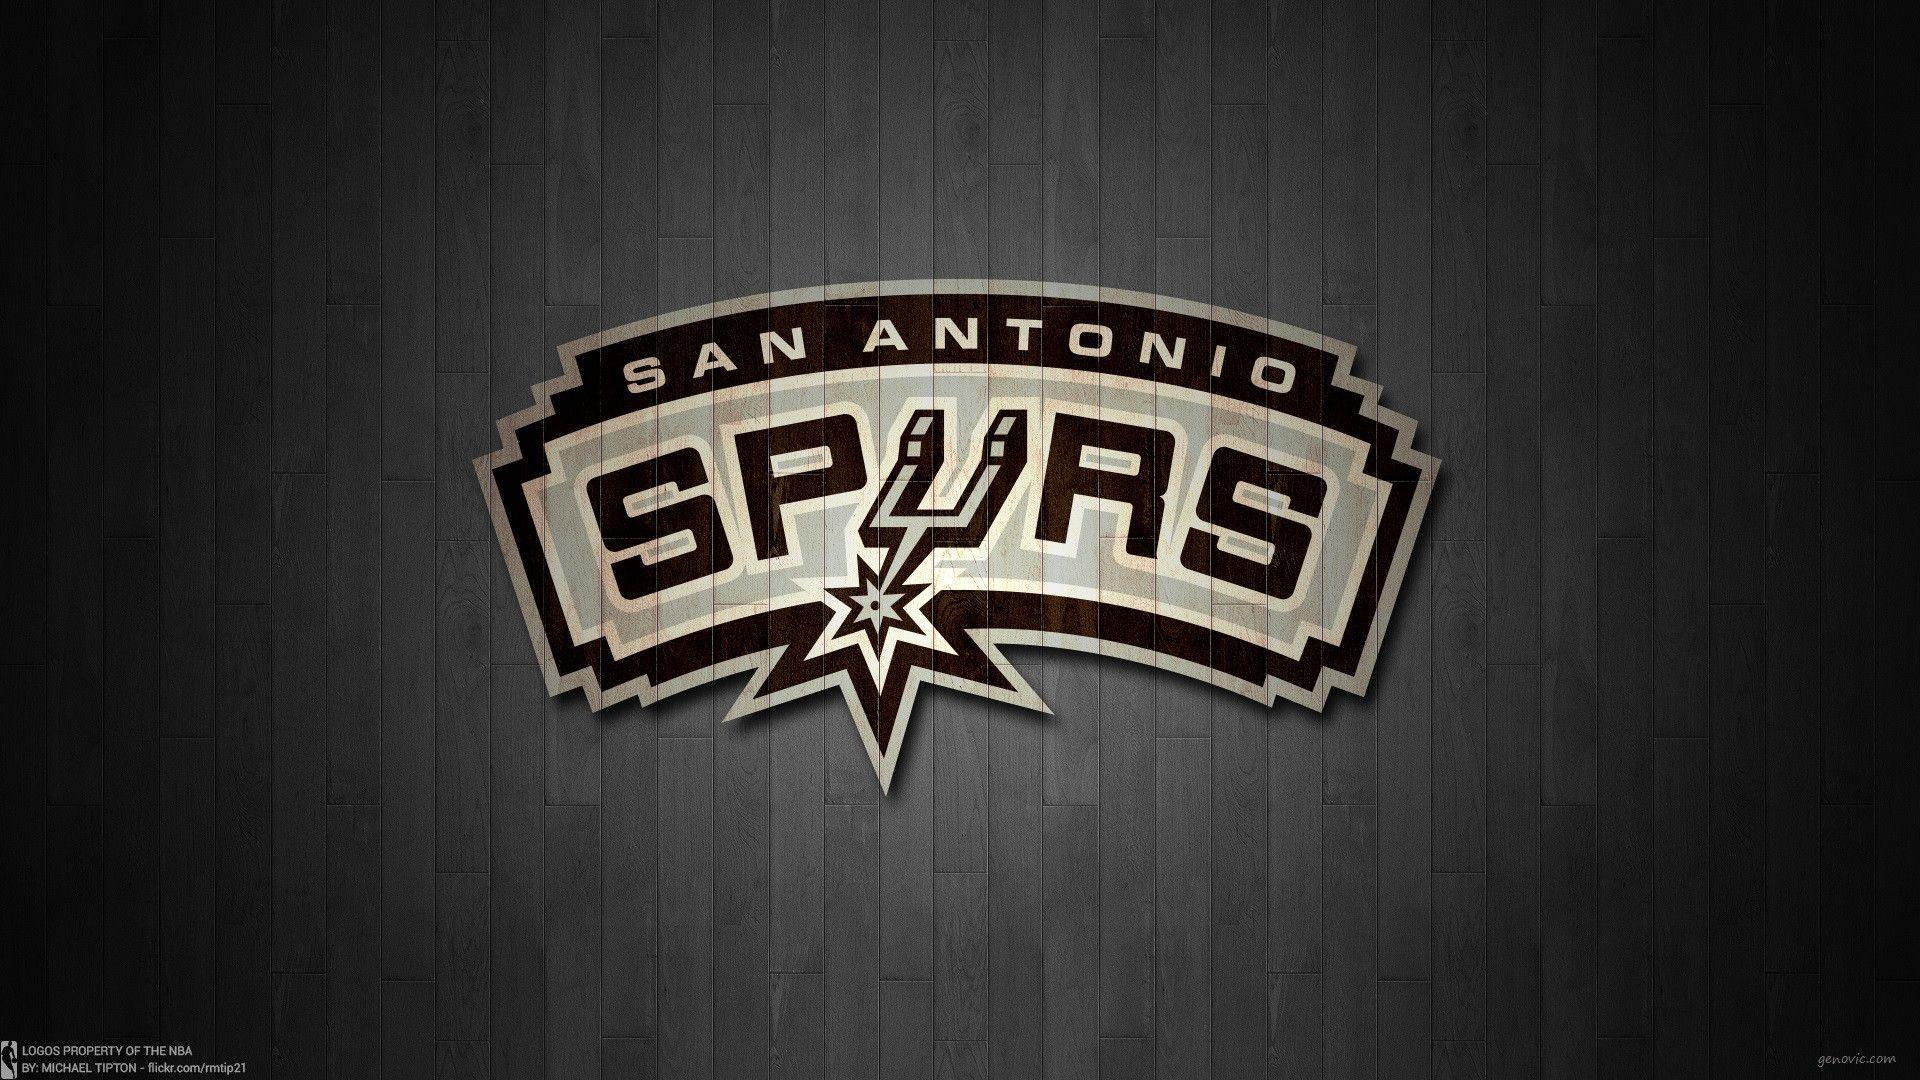 Spurs 2016 Wallpapers - Wallpaper Cave